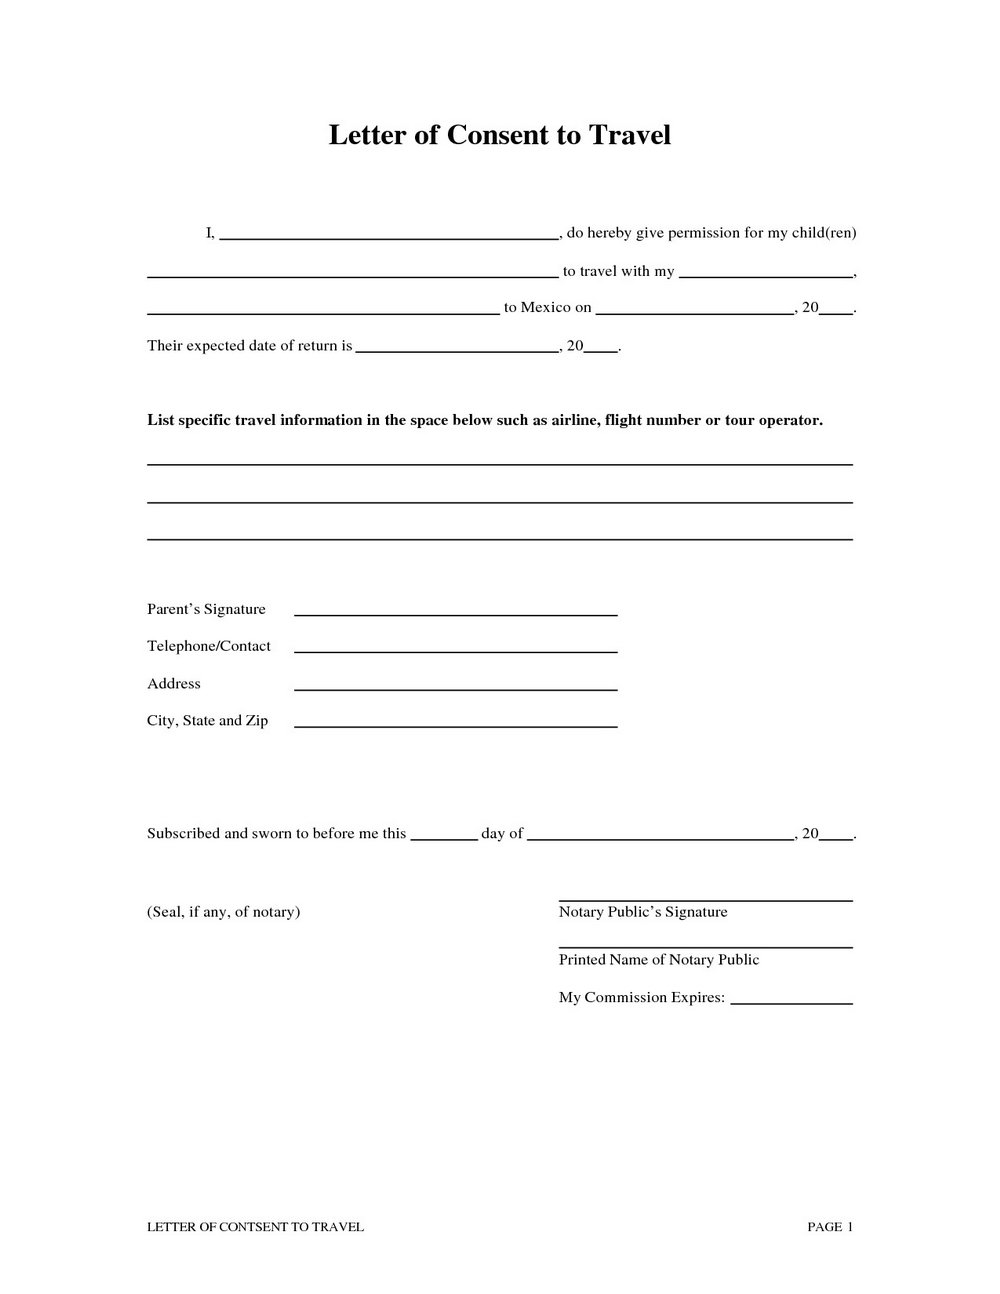 Notarized Letter Template For Child Travel